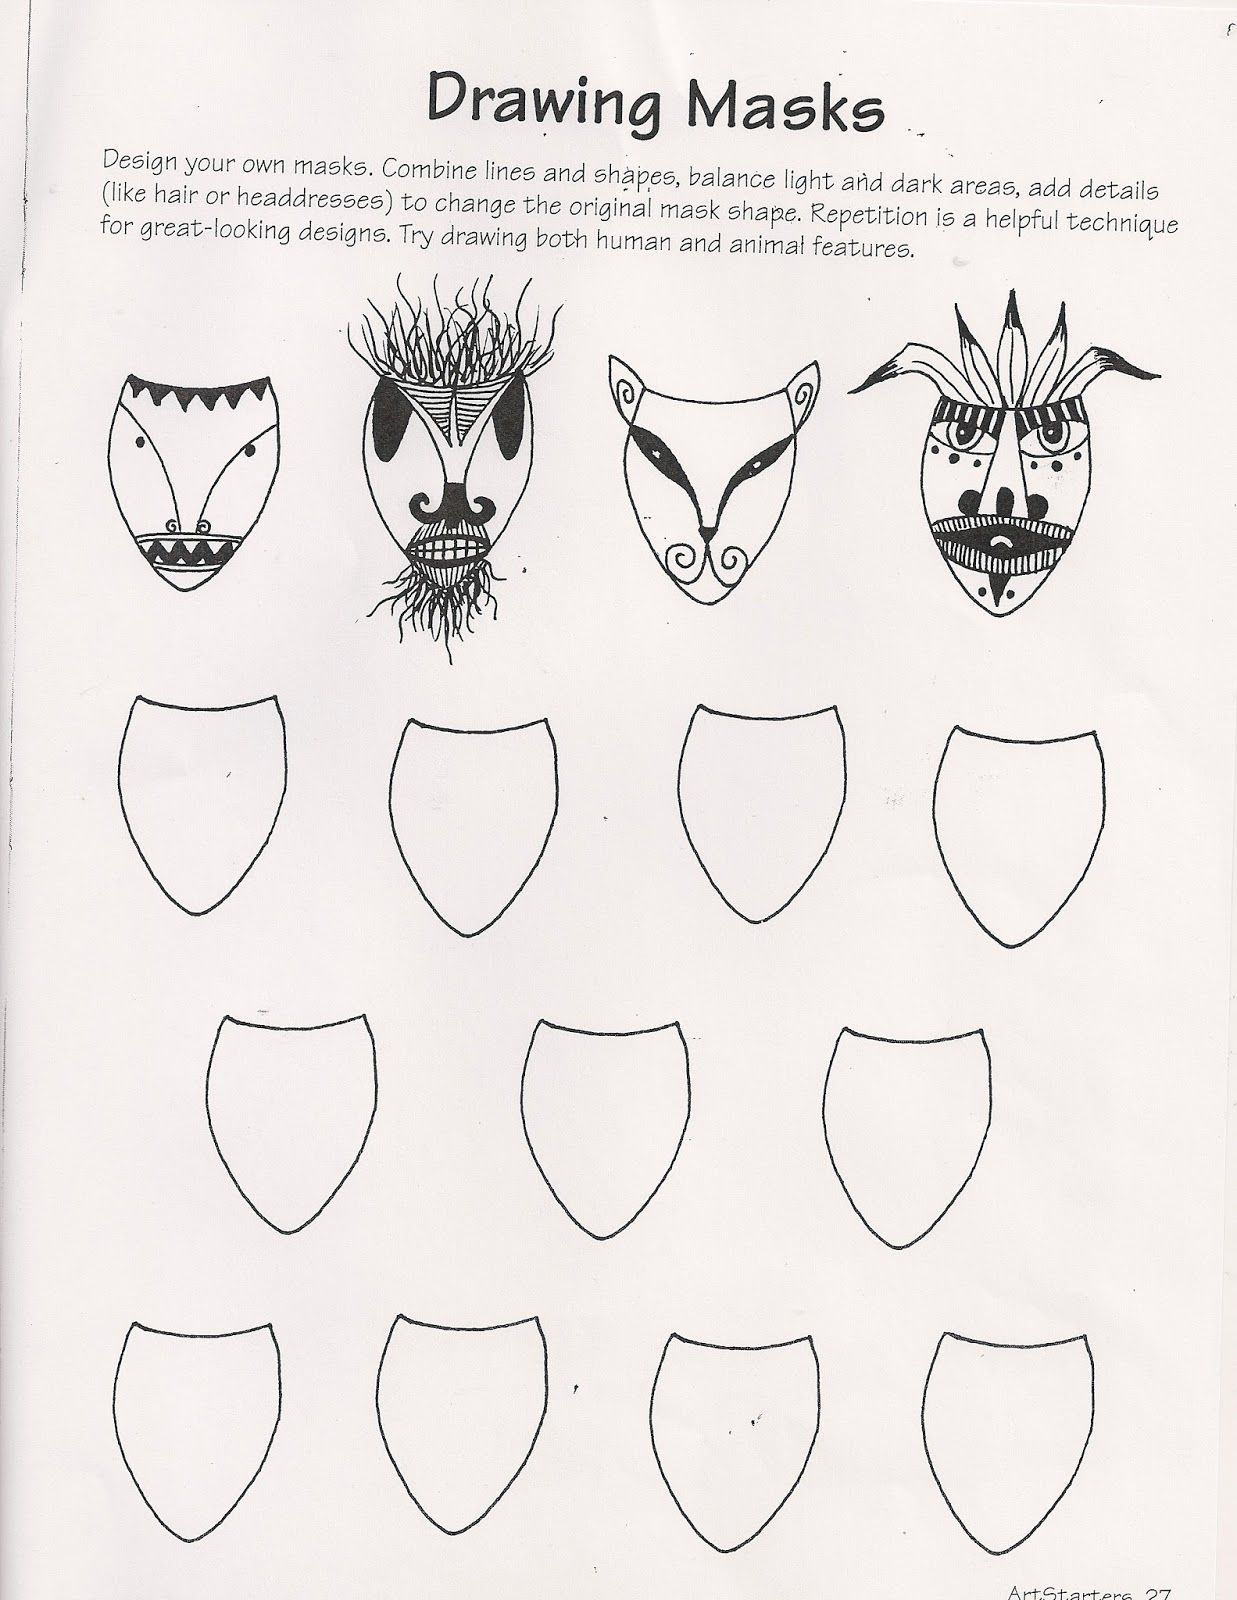 Ande Cook S Drawing Masks Worksheet And Art Education Substitute Lesson